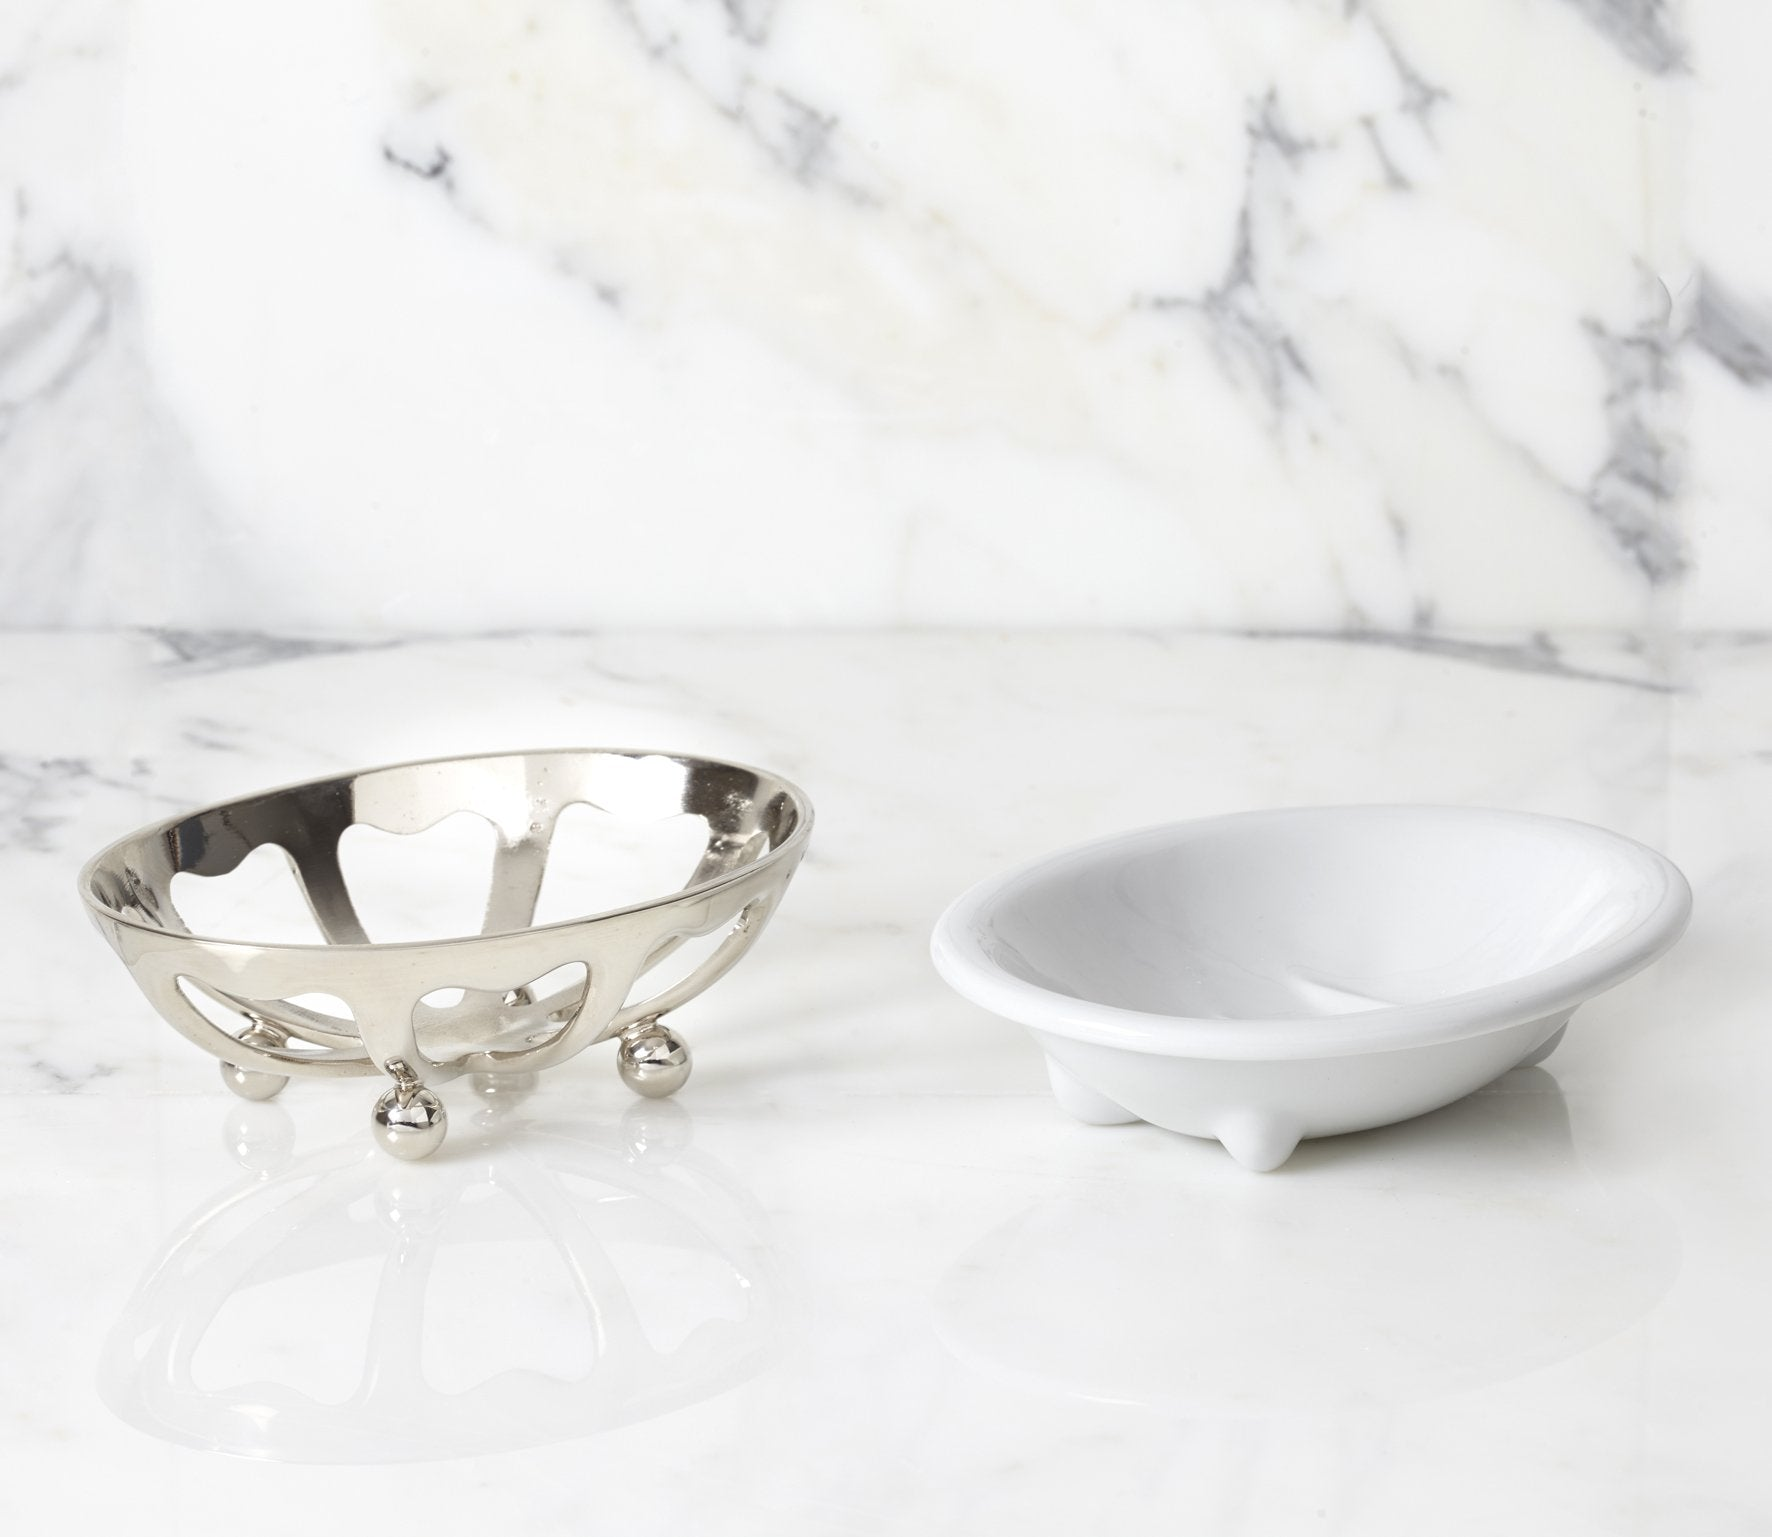 Classic Soap Dish with White Porcelain Product Image 2